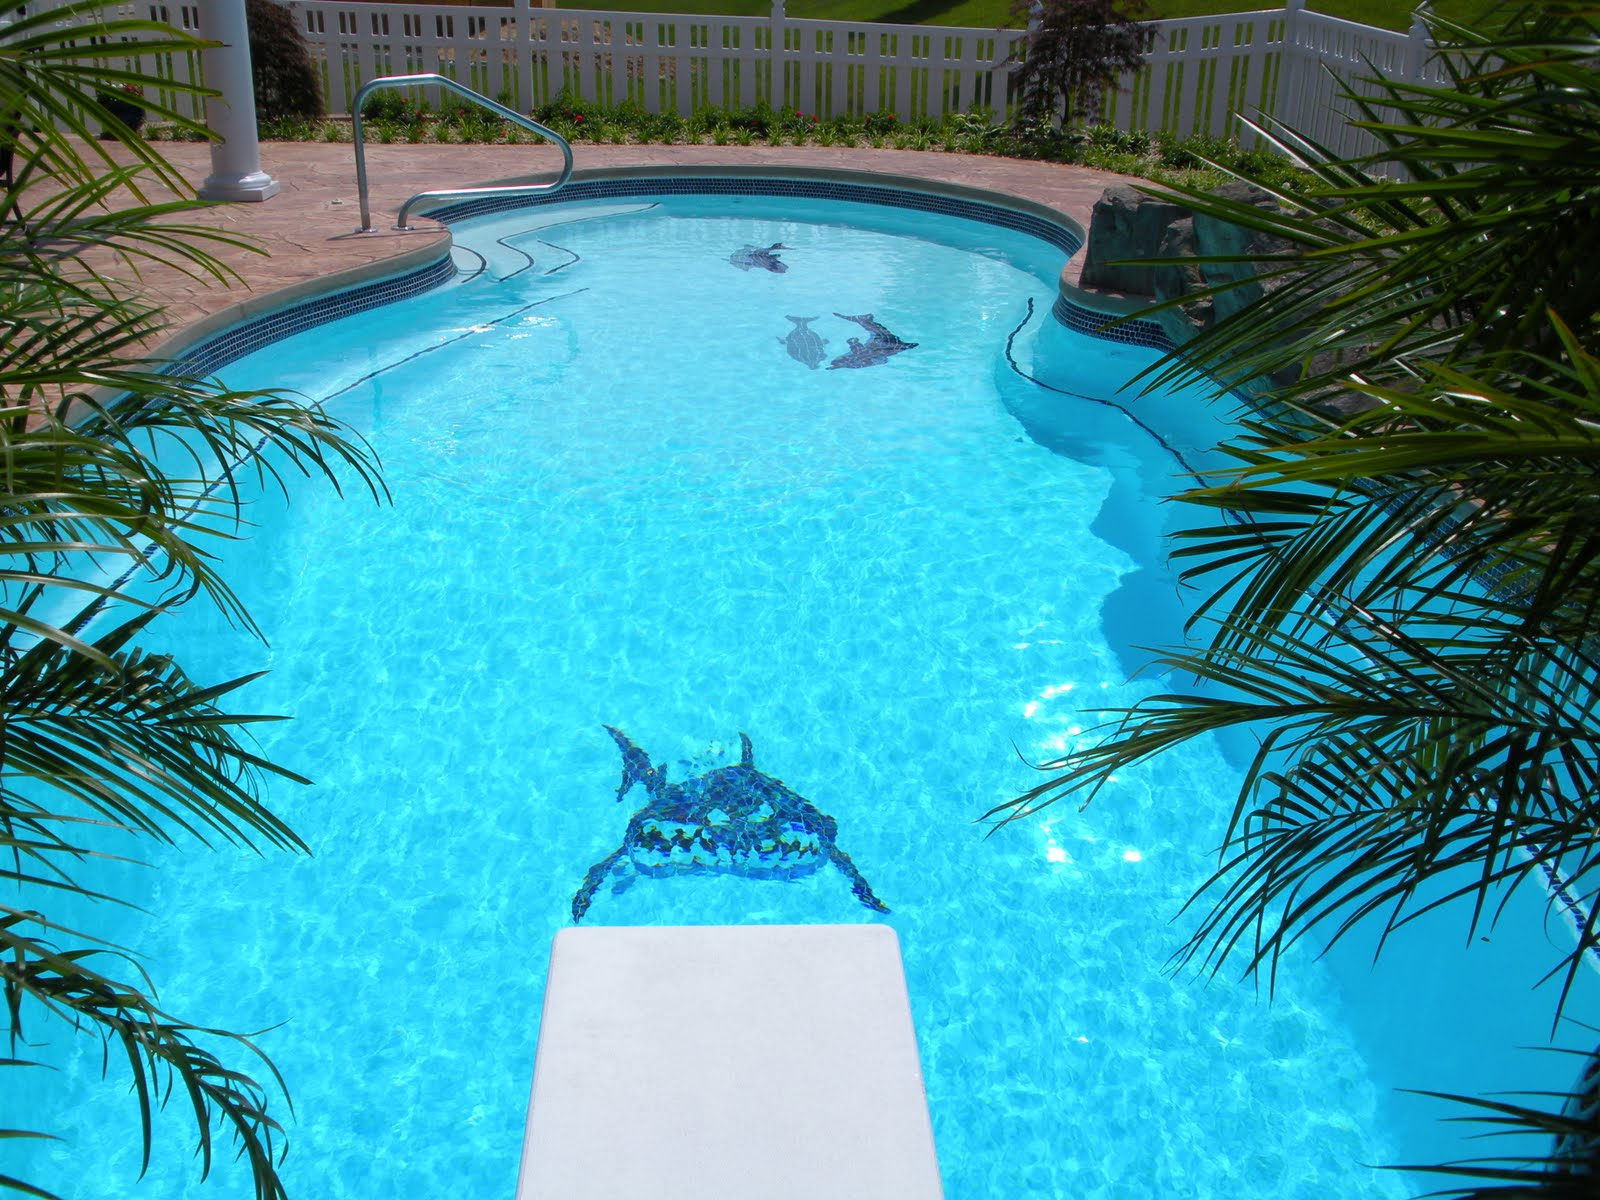 Swimming pool blog for Pictures of the pool